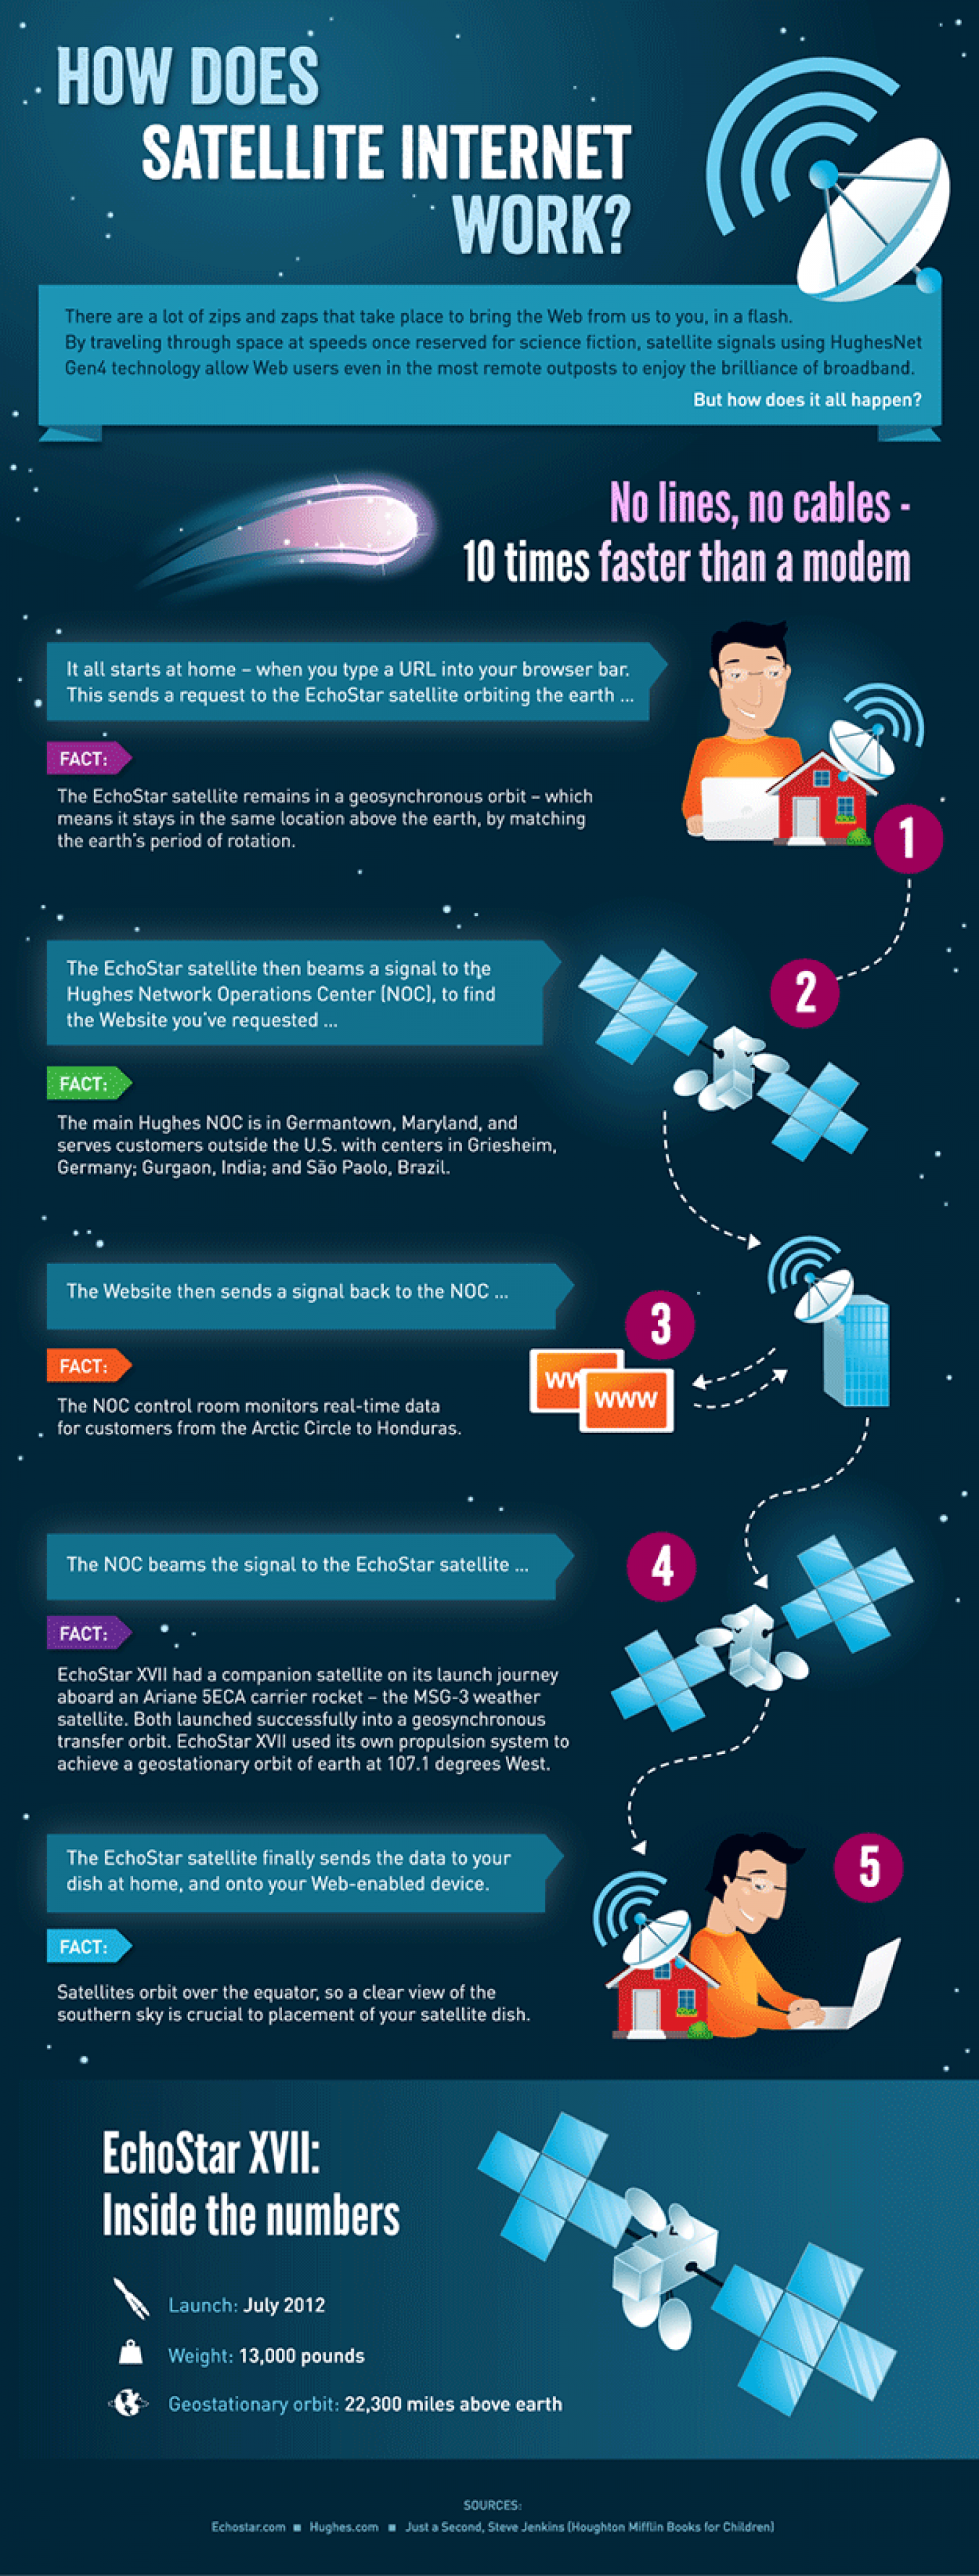 How Does Satellite Internet Work? Infographic